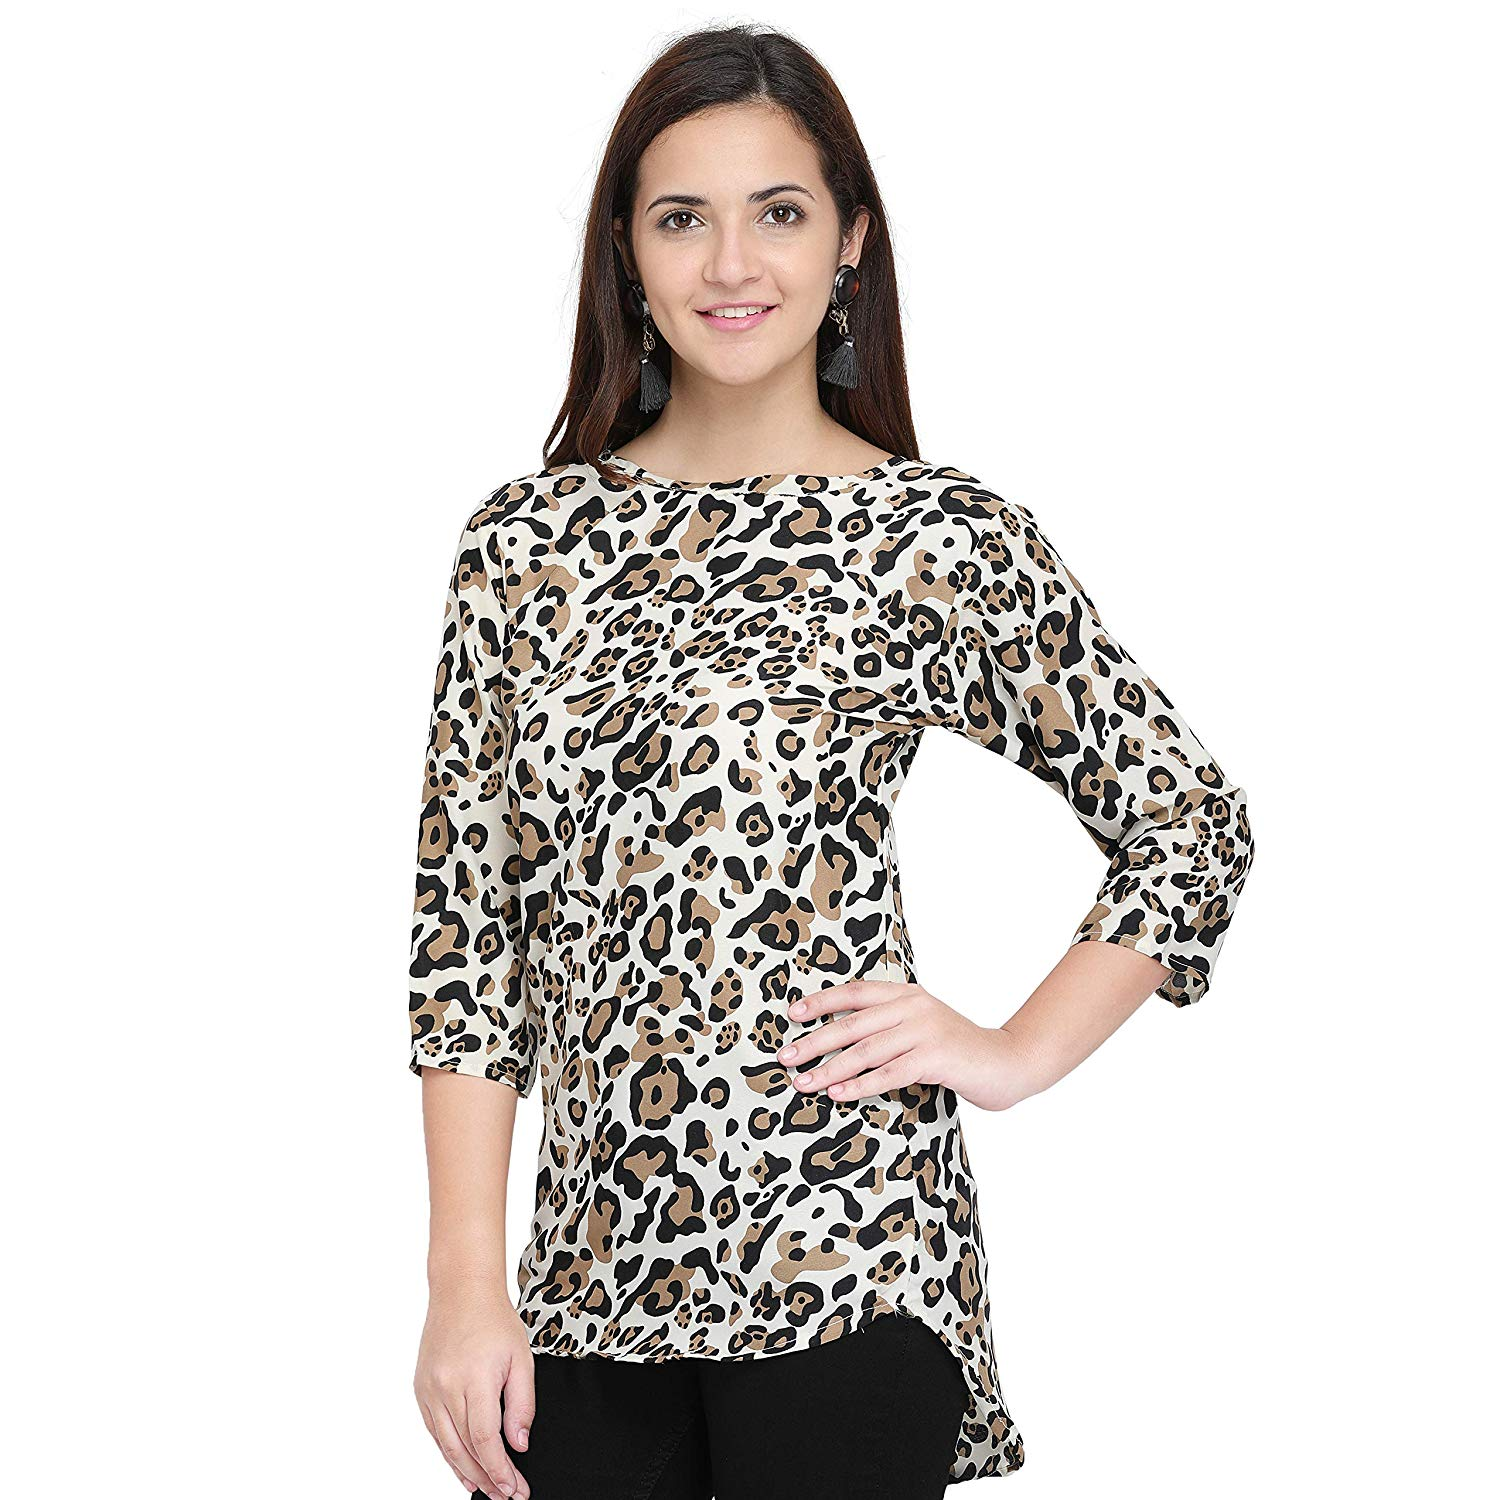 b5d70a46f2e72a ... Creap Top For Daily wear Stylish Casual and Western Wear Women/Girls Top.  By Online Retail Market